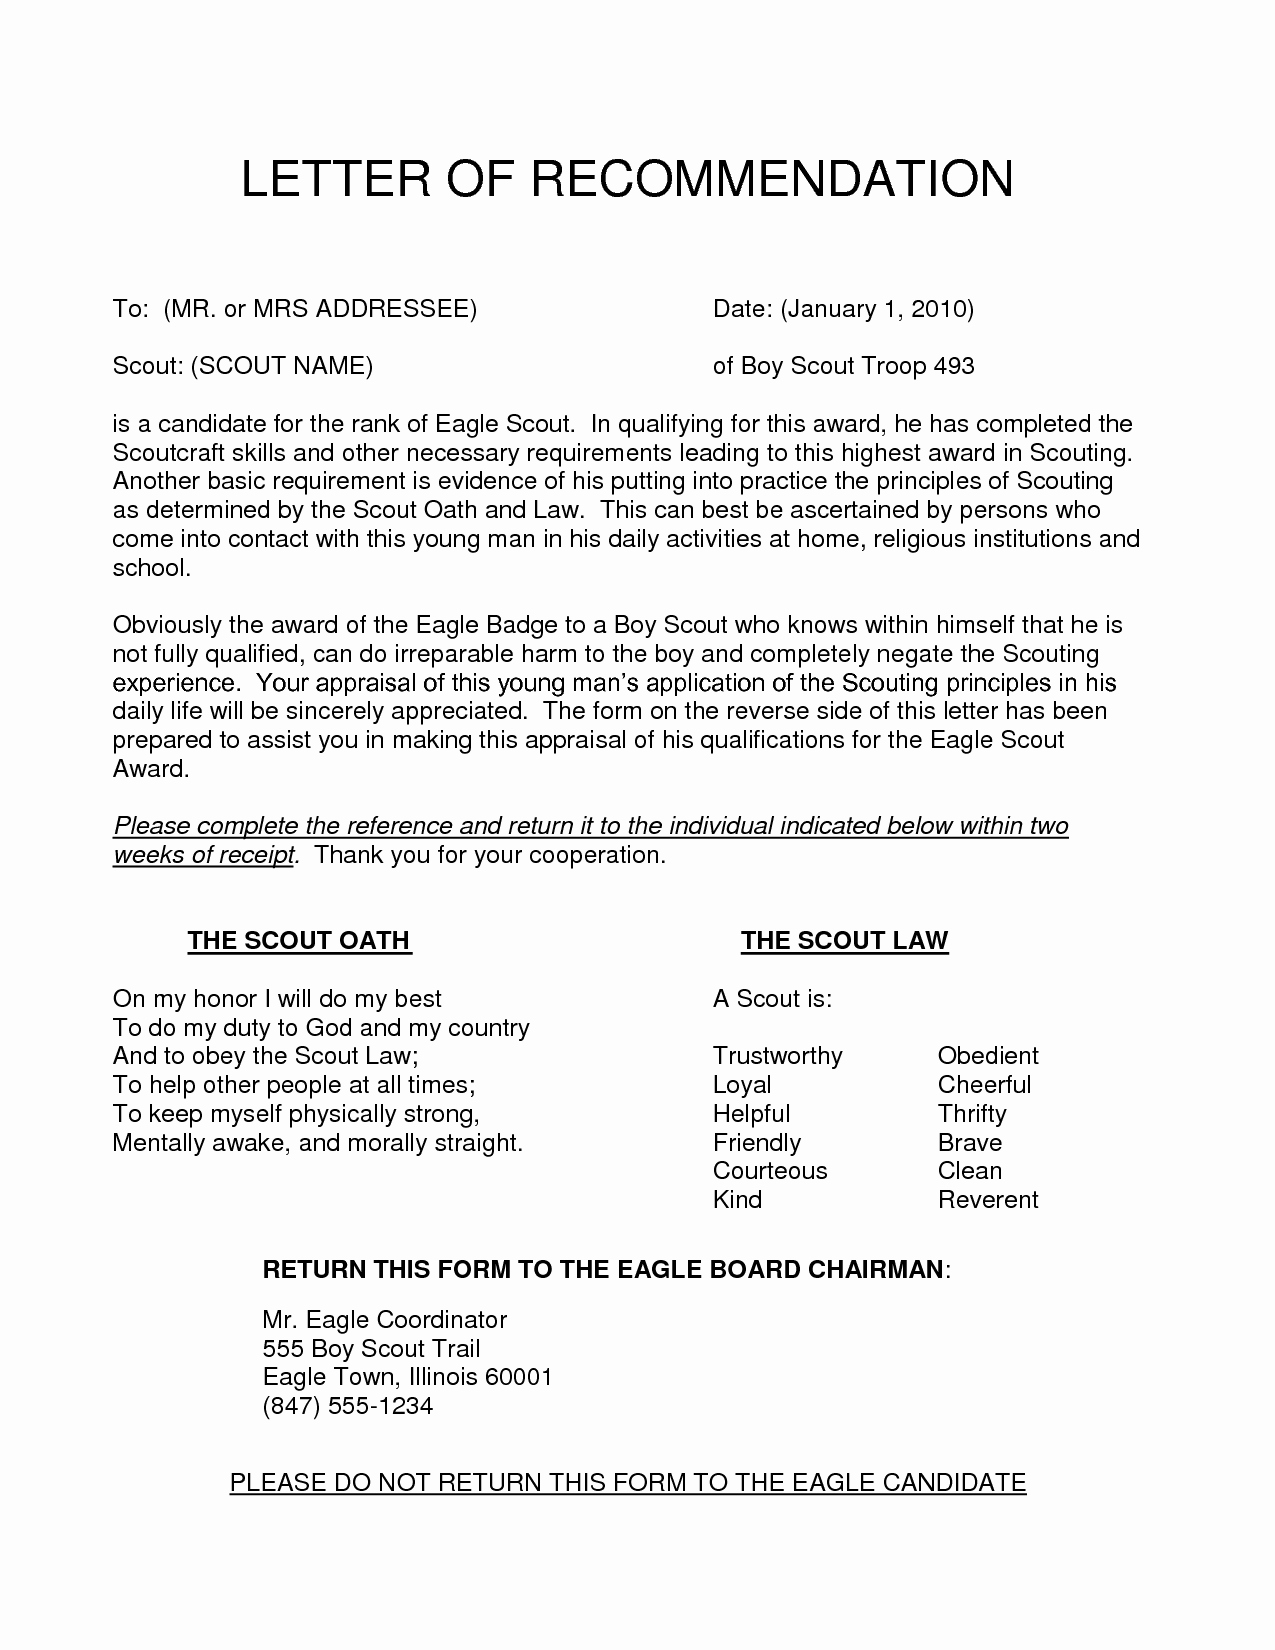 Letter Of Recommendation Letterhead Awesome Pin by Terry Duvall On Eagle Scout Letters Of